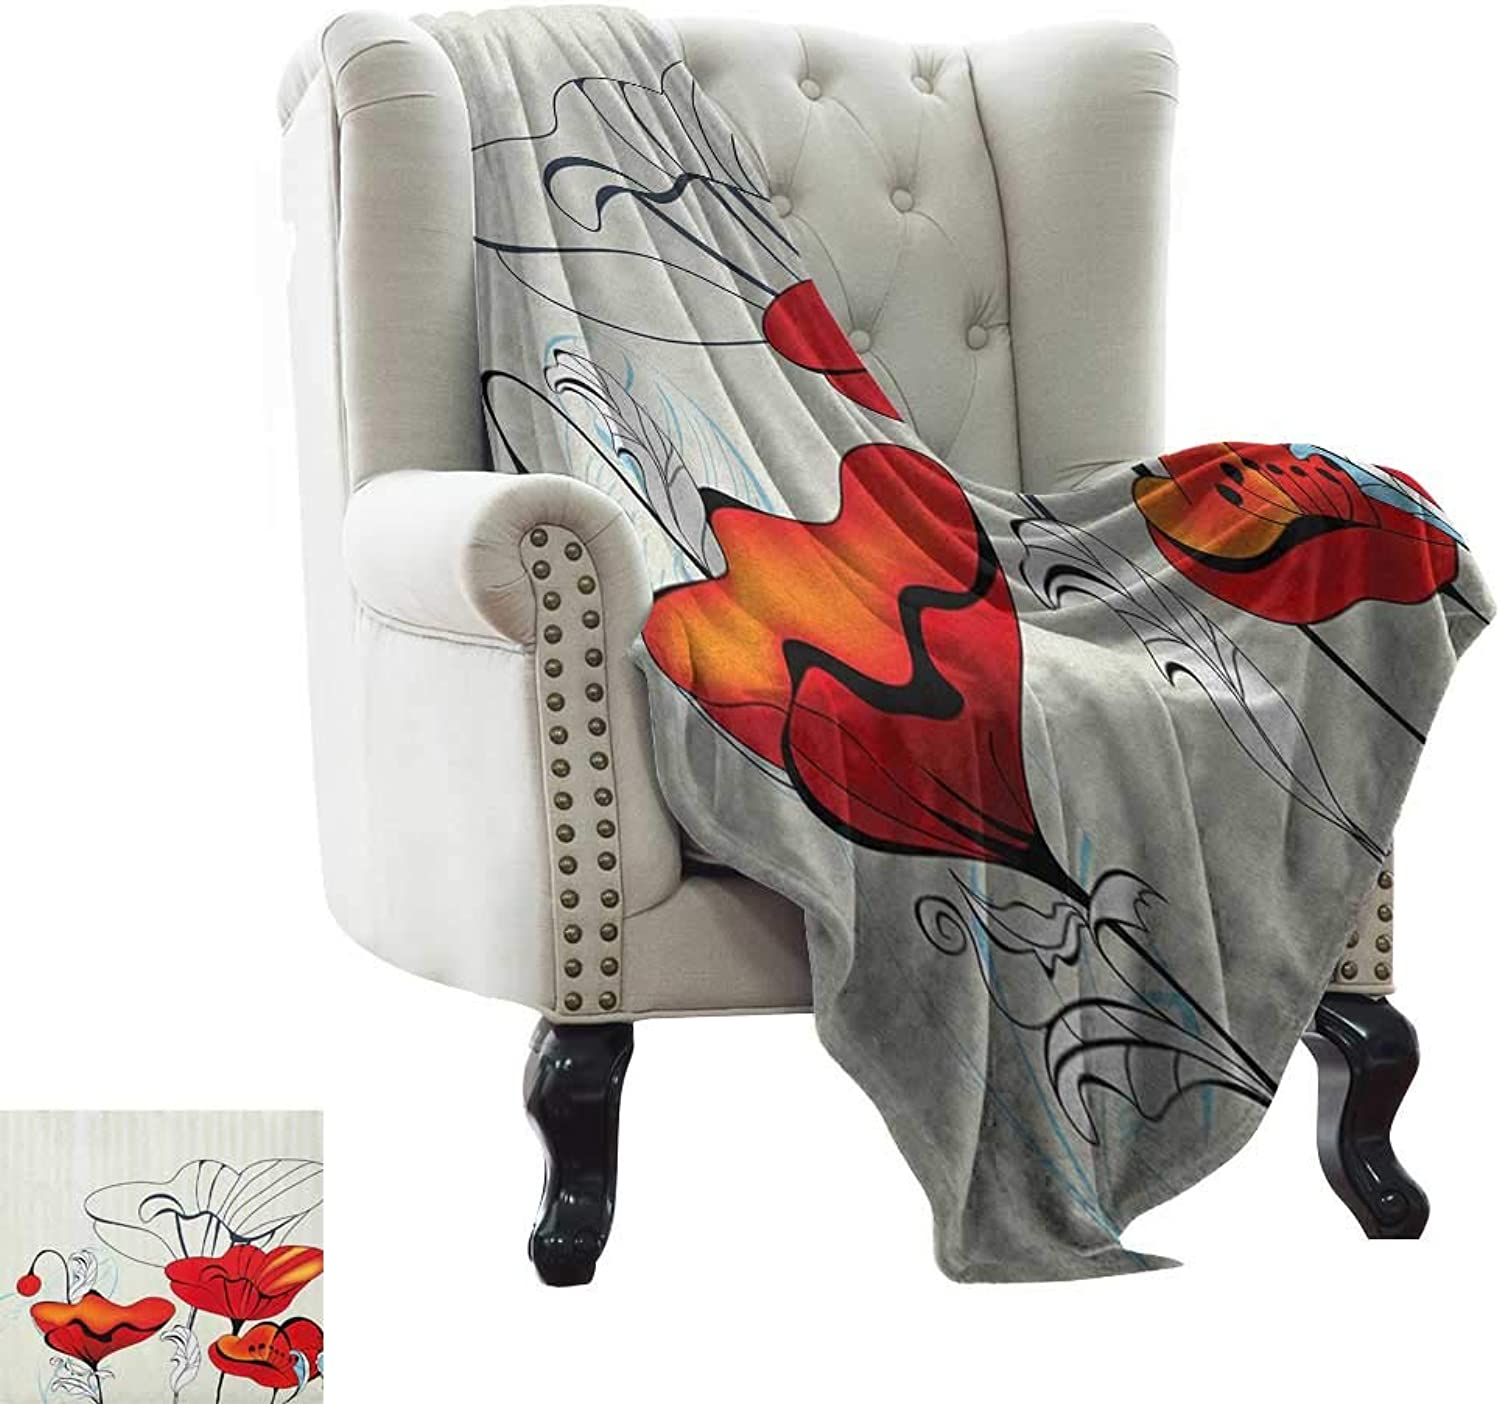 Weighted Blanket for Kids Poppy,Artistic Florets and Buds with Curly Leaves and Red Petals in Vintage Style, Red Pale bluee Beige colorful Home Couch Outdoor Travel Use Blanket 50 x60